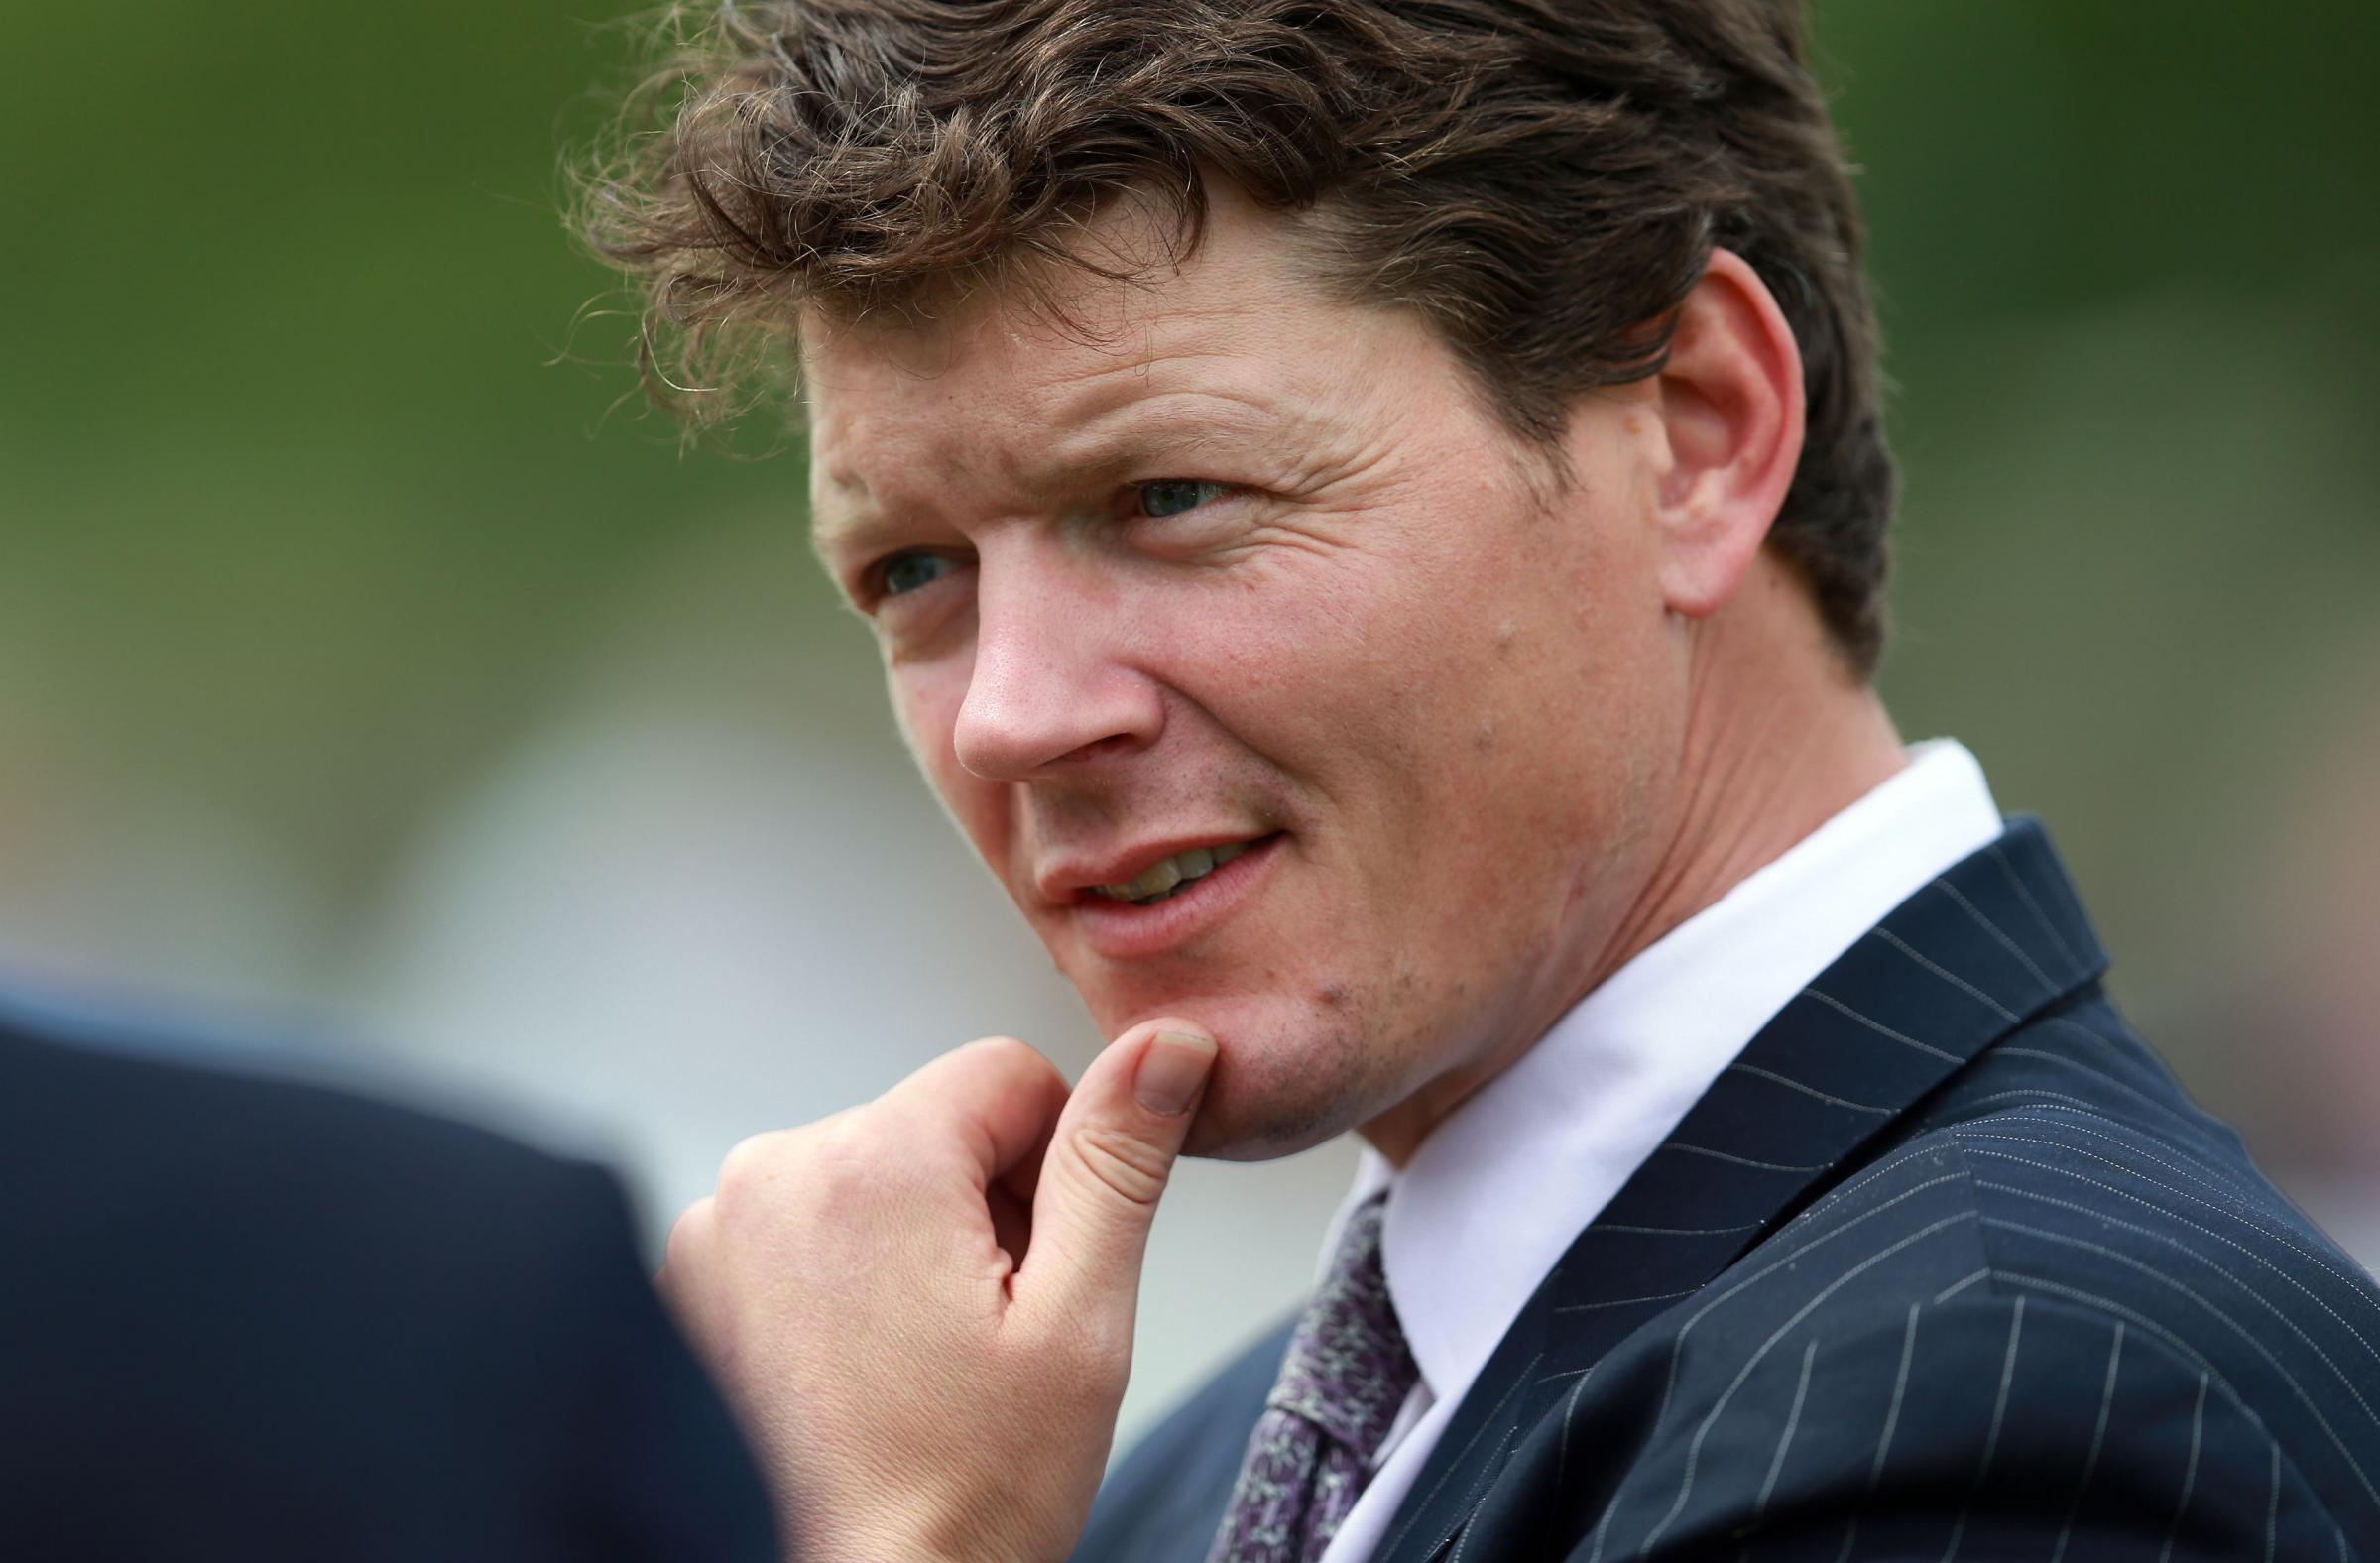 Kingsclere horse racing trainer Andrew Balding has runners in action at Royal Ascot this week